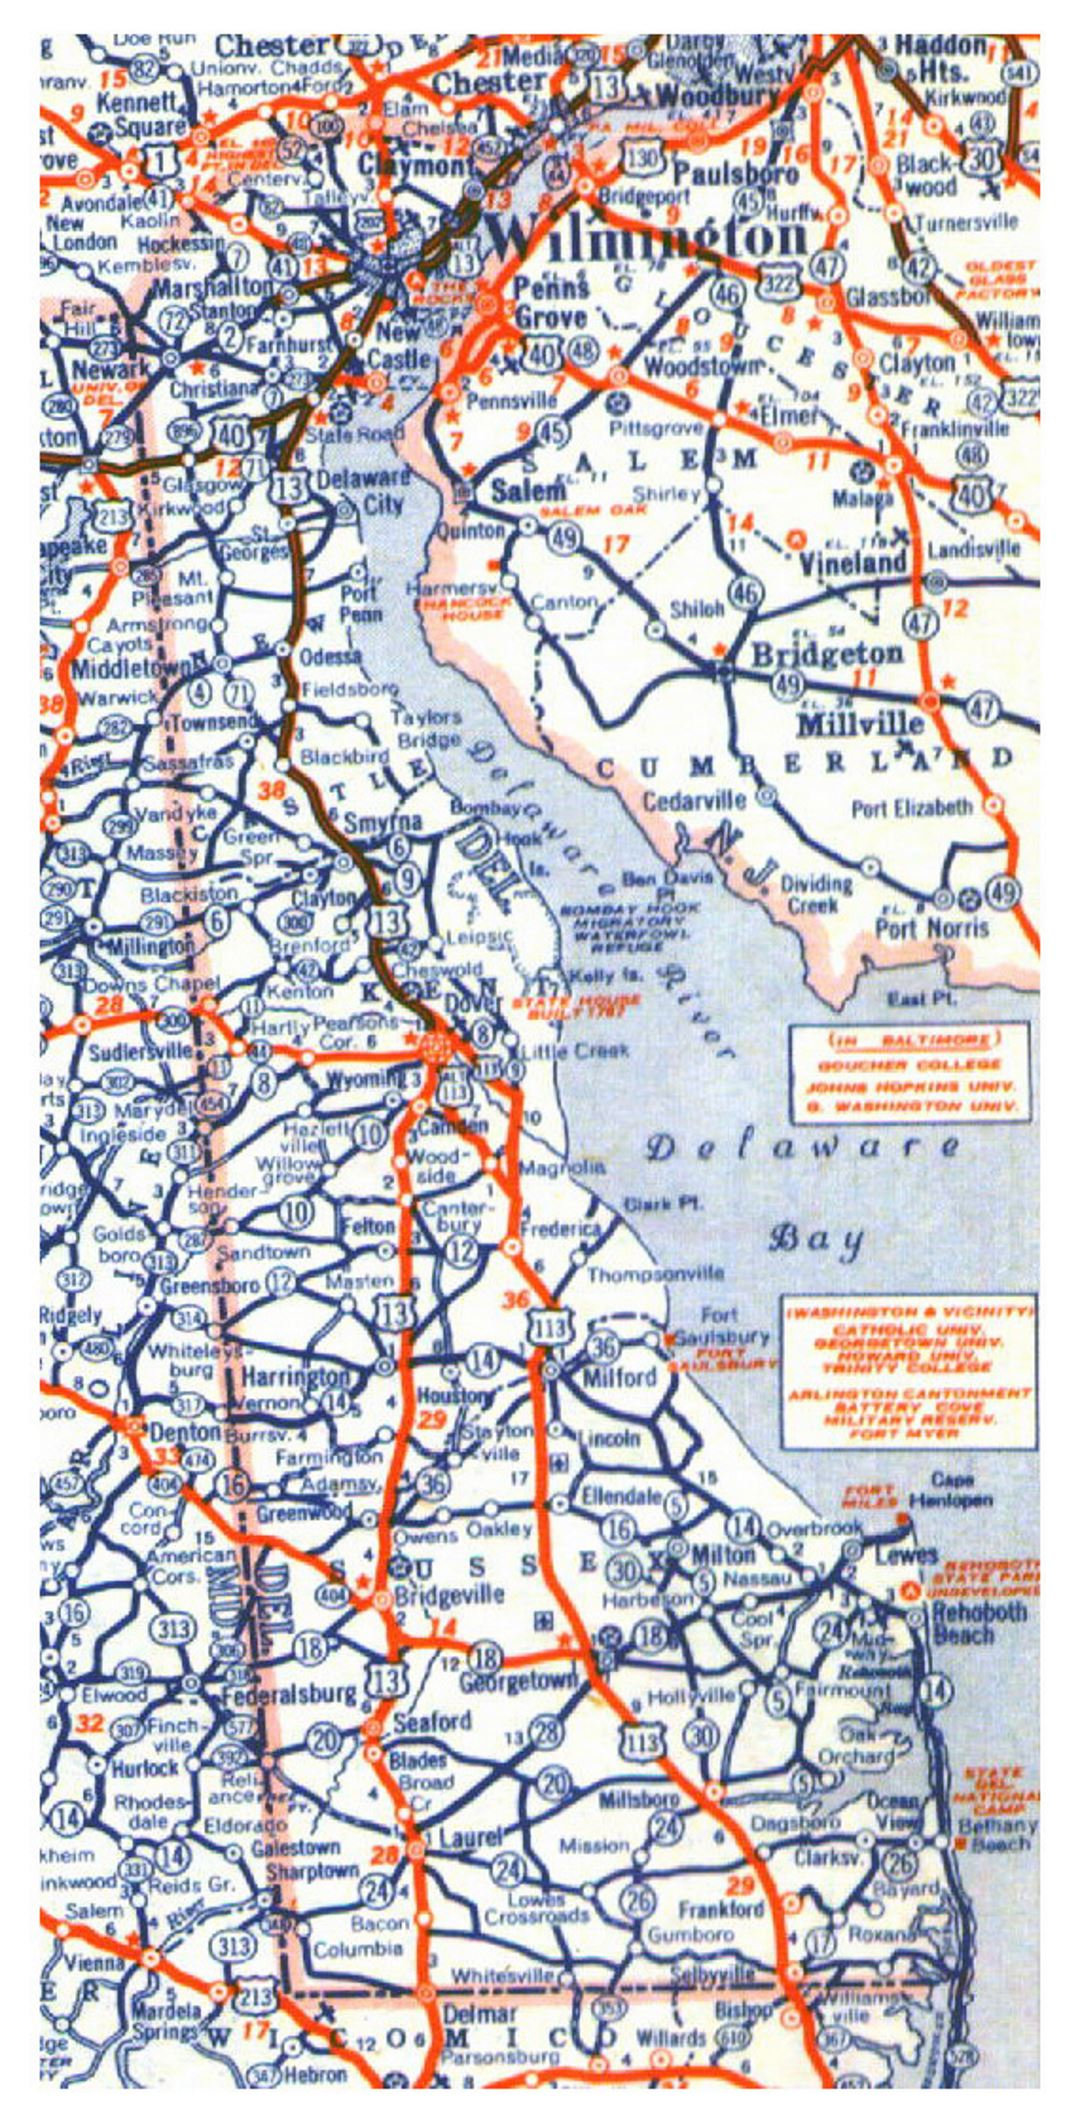 Roads and highways map of Delaware state - 1944